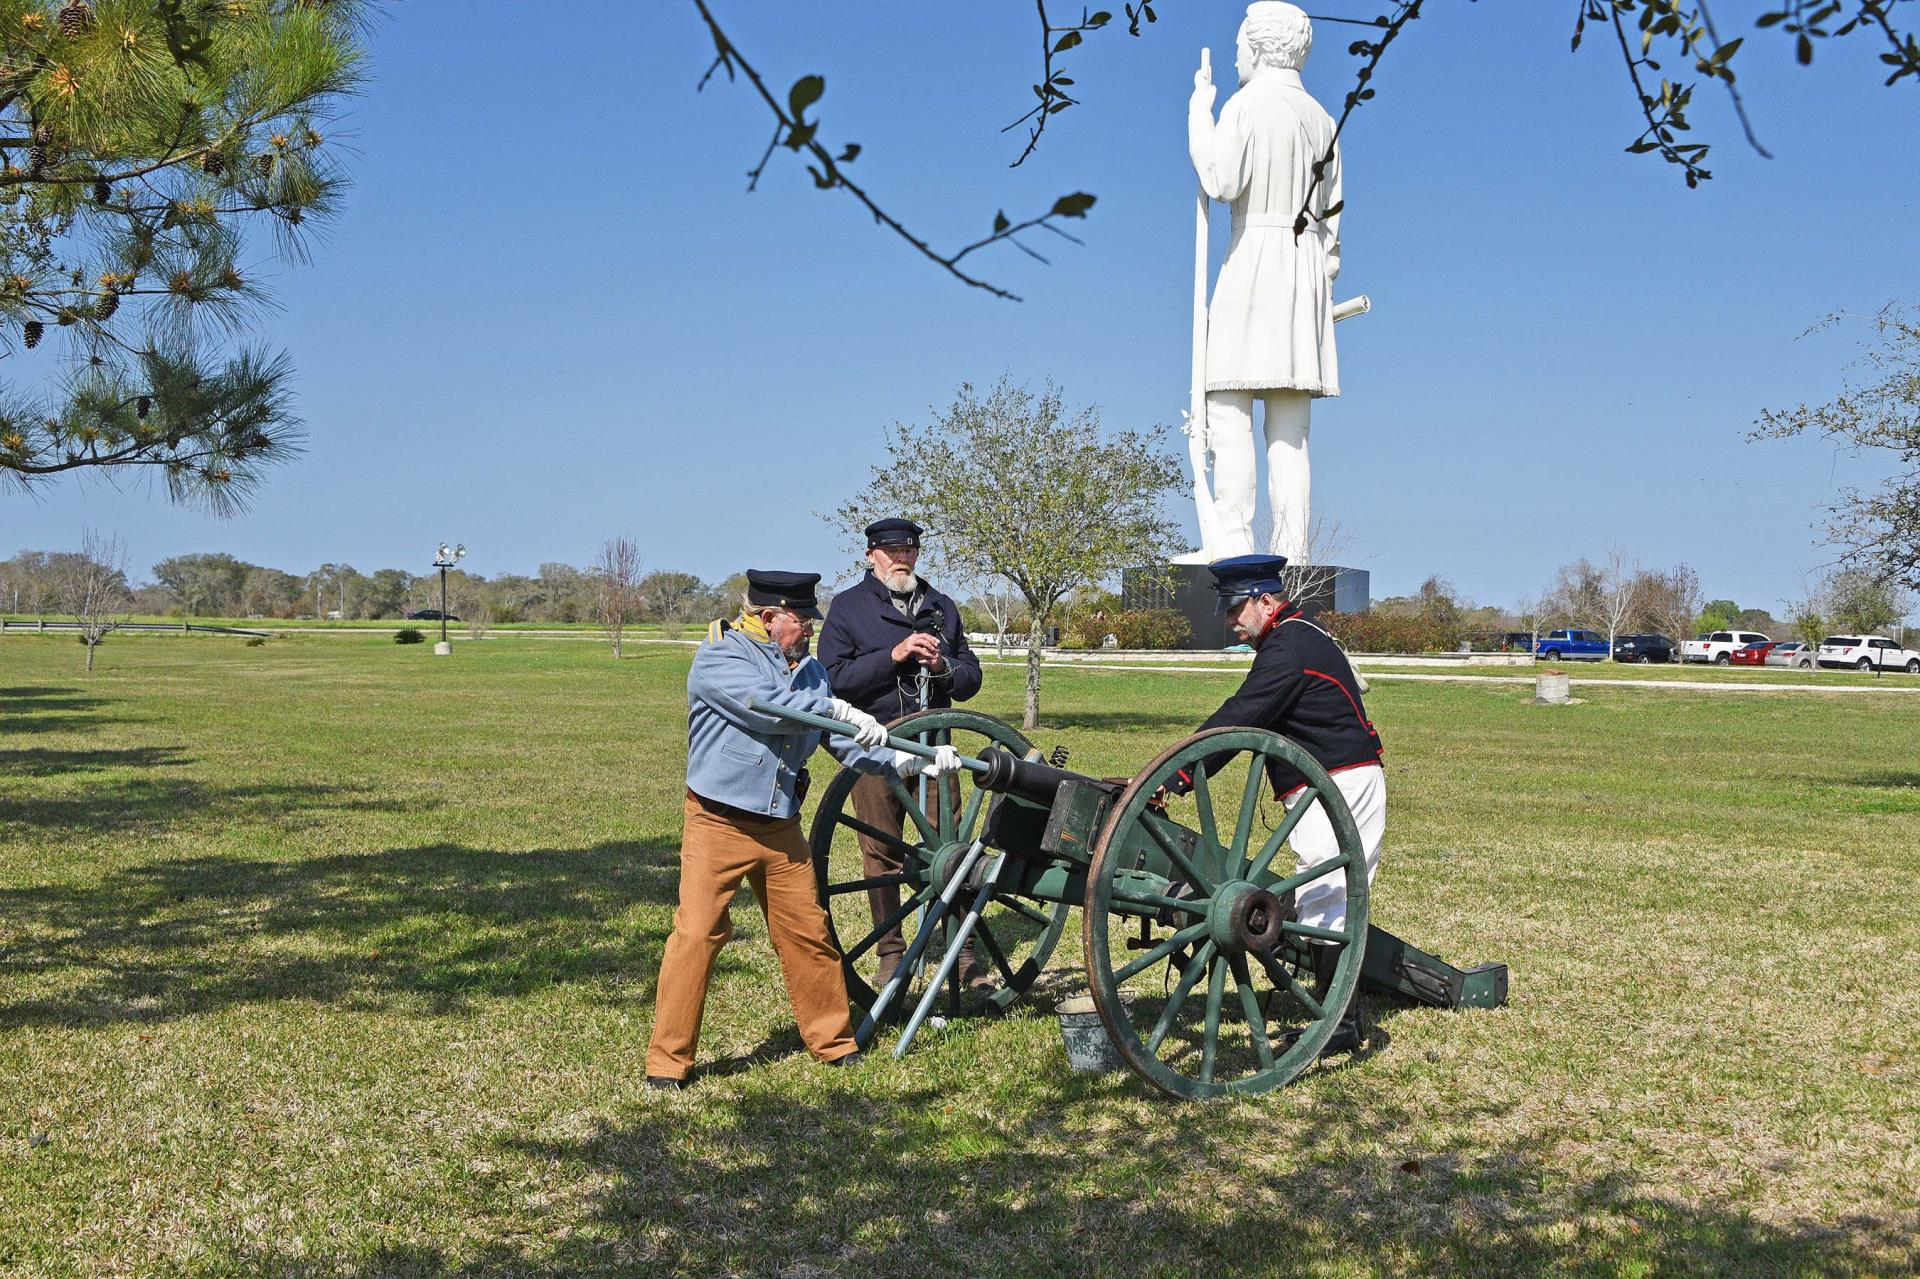 cannon crew at Tx Independence Day